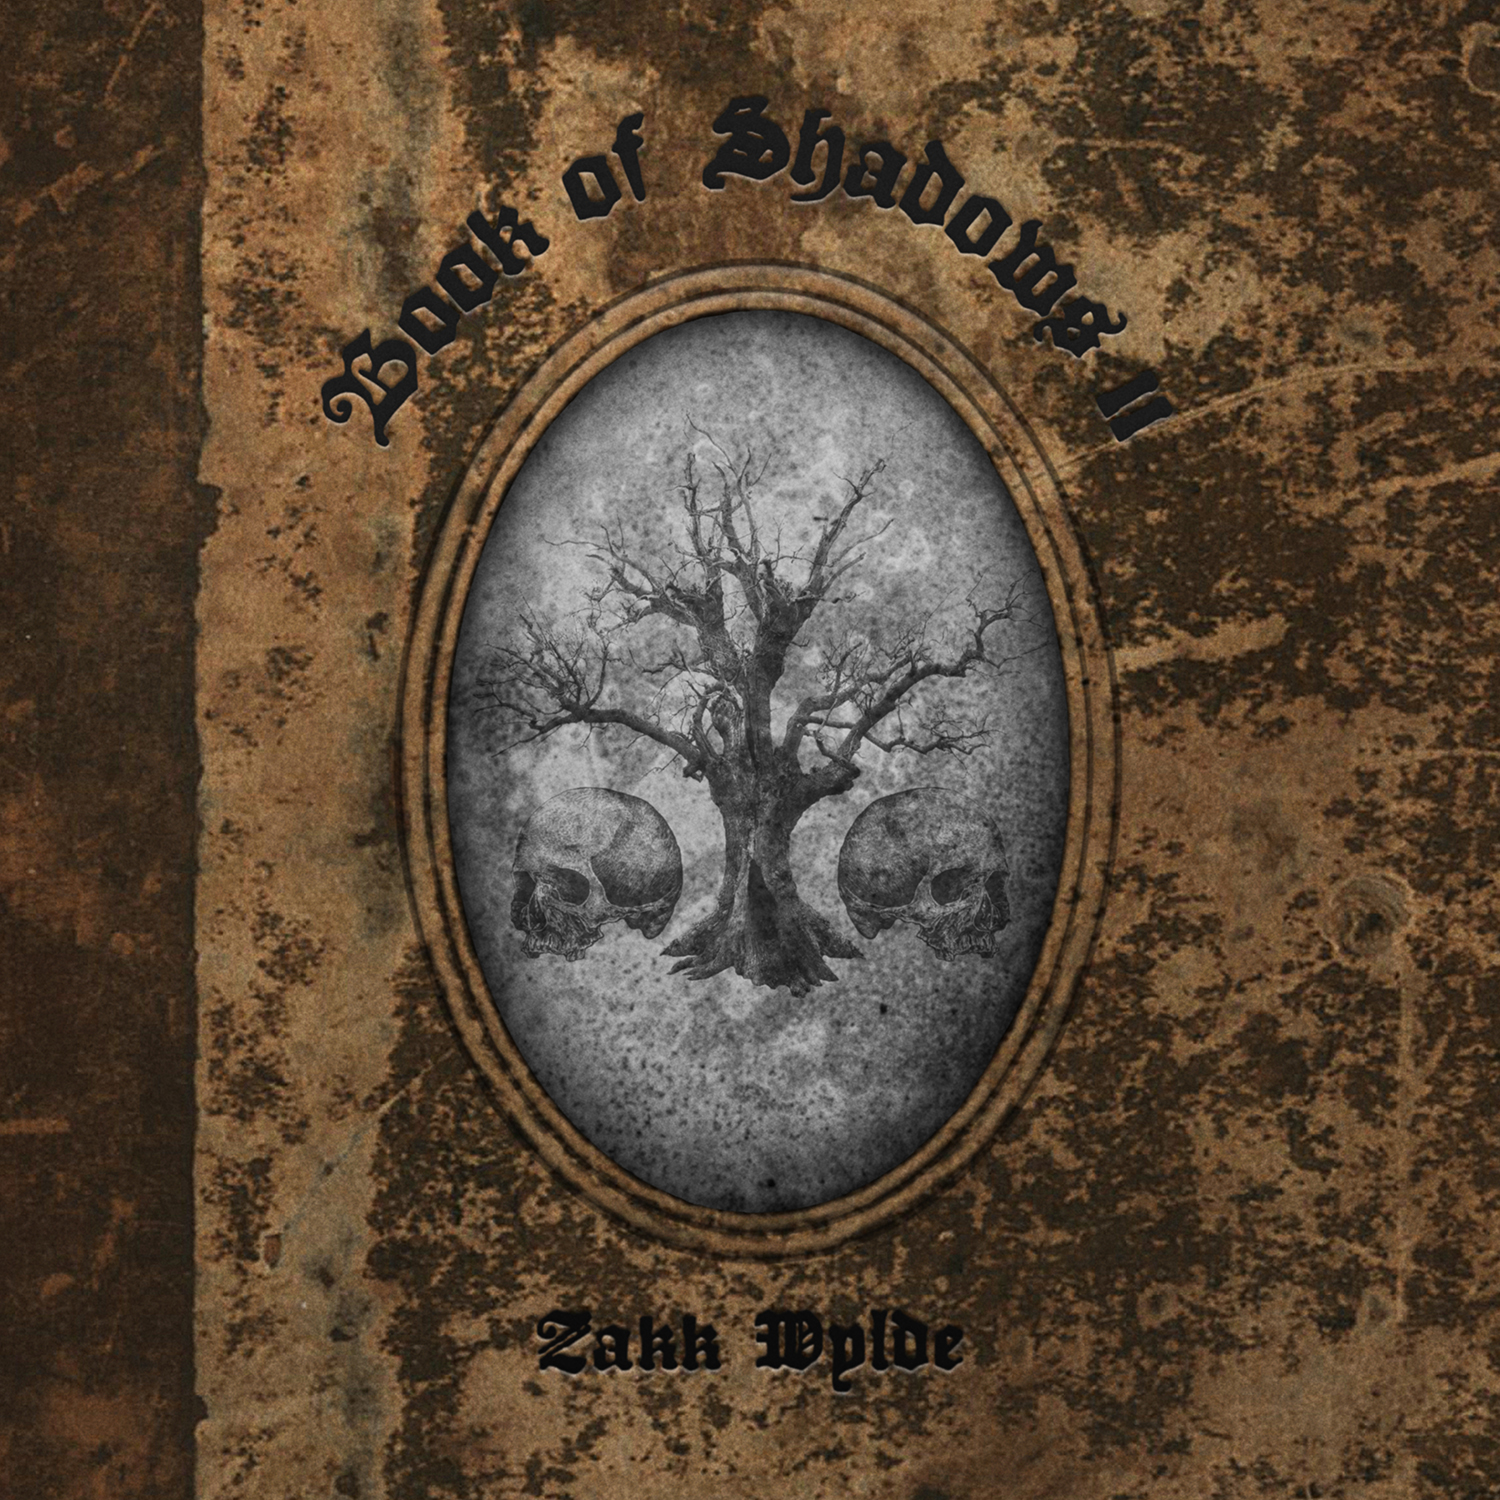 zakk-wylde-book-of-shadows-ii-cover.jpg